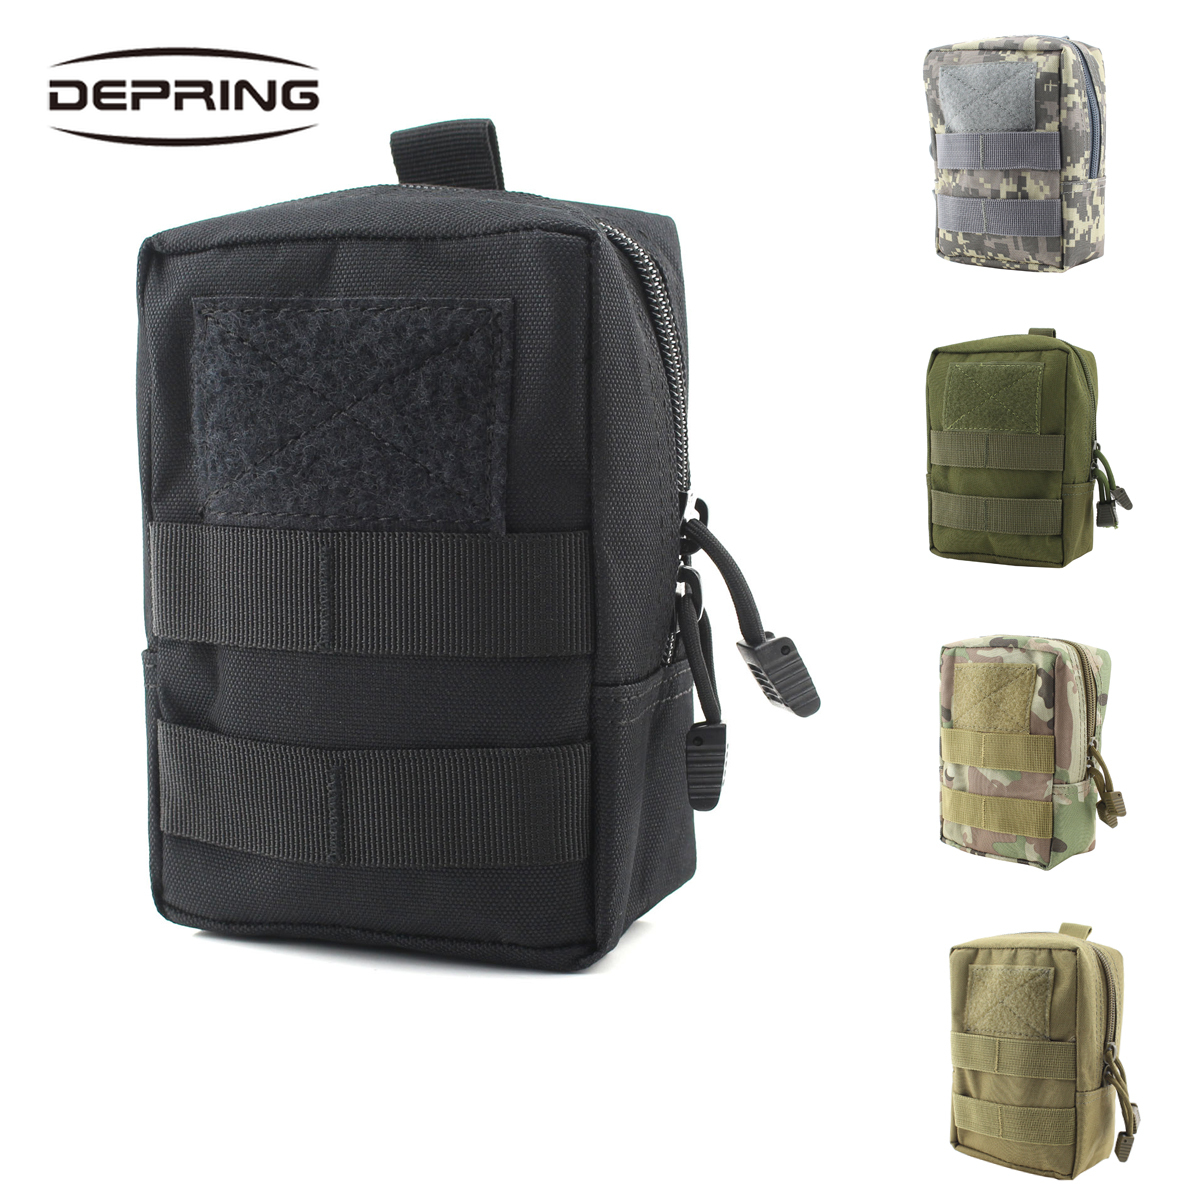 600D Nylon Tactical Molle Waist Bag Utility Magazine Pouch Medic Pouch Pack For Hunting Hiking Camping Accessories 5 Color